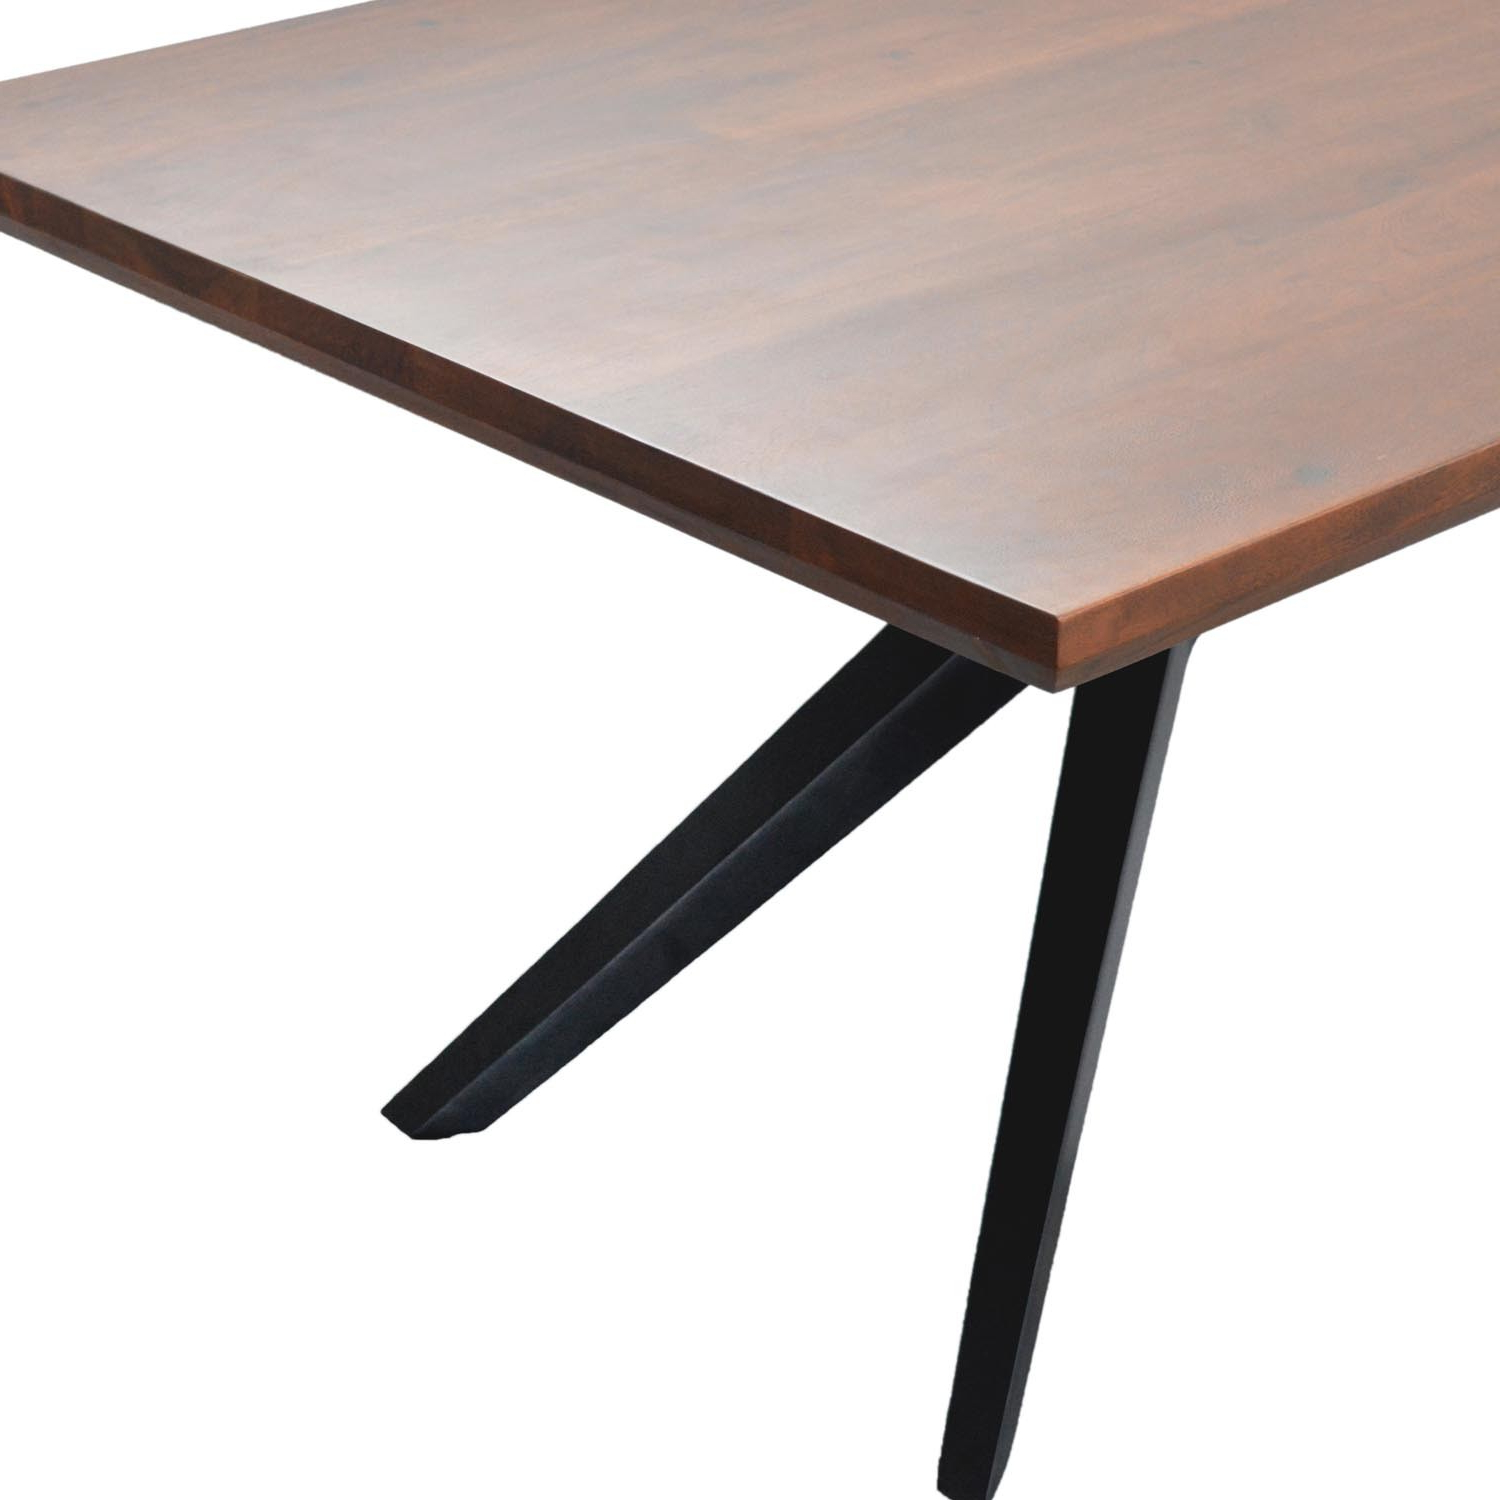 Acacia Wood Dining Tables With Sheet Metal Base Inside Well Known Streamline Dining Table (View 5 of 25)